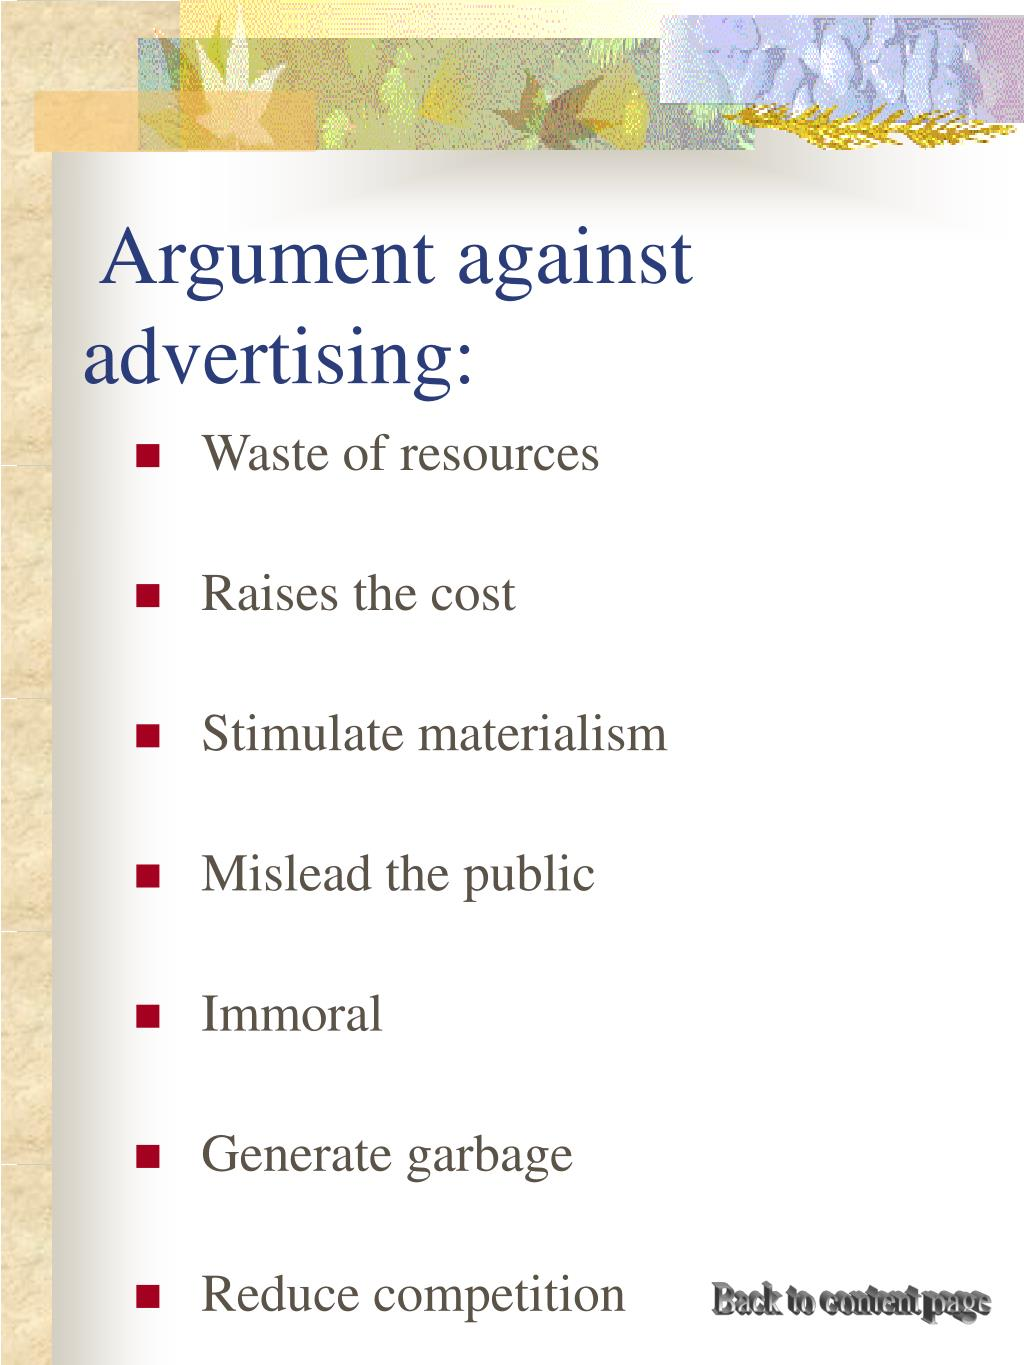 Argument against advertising